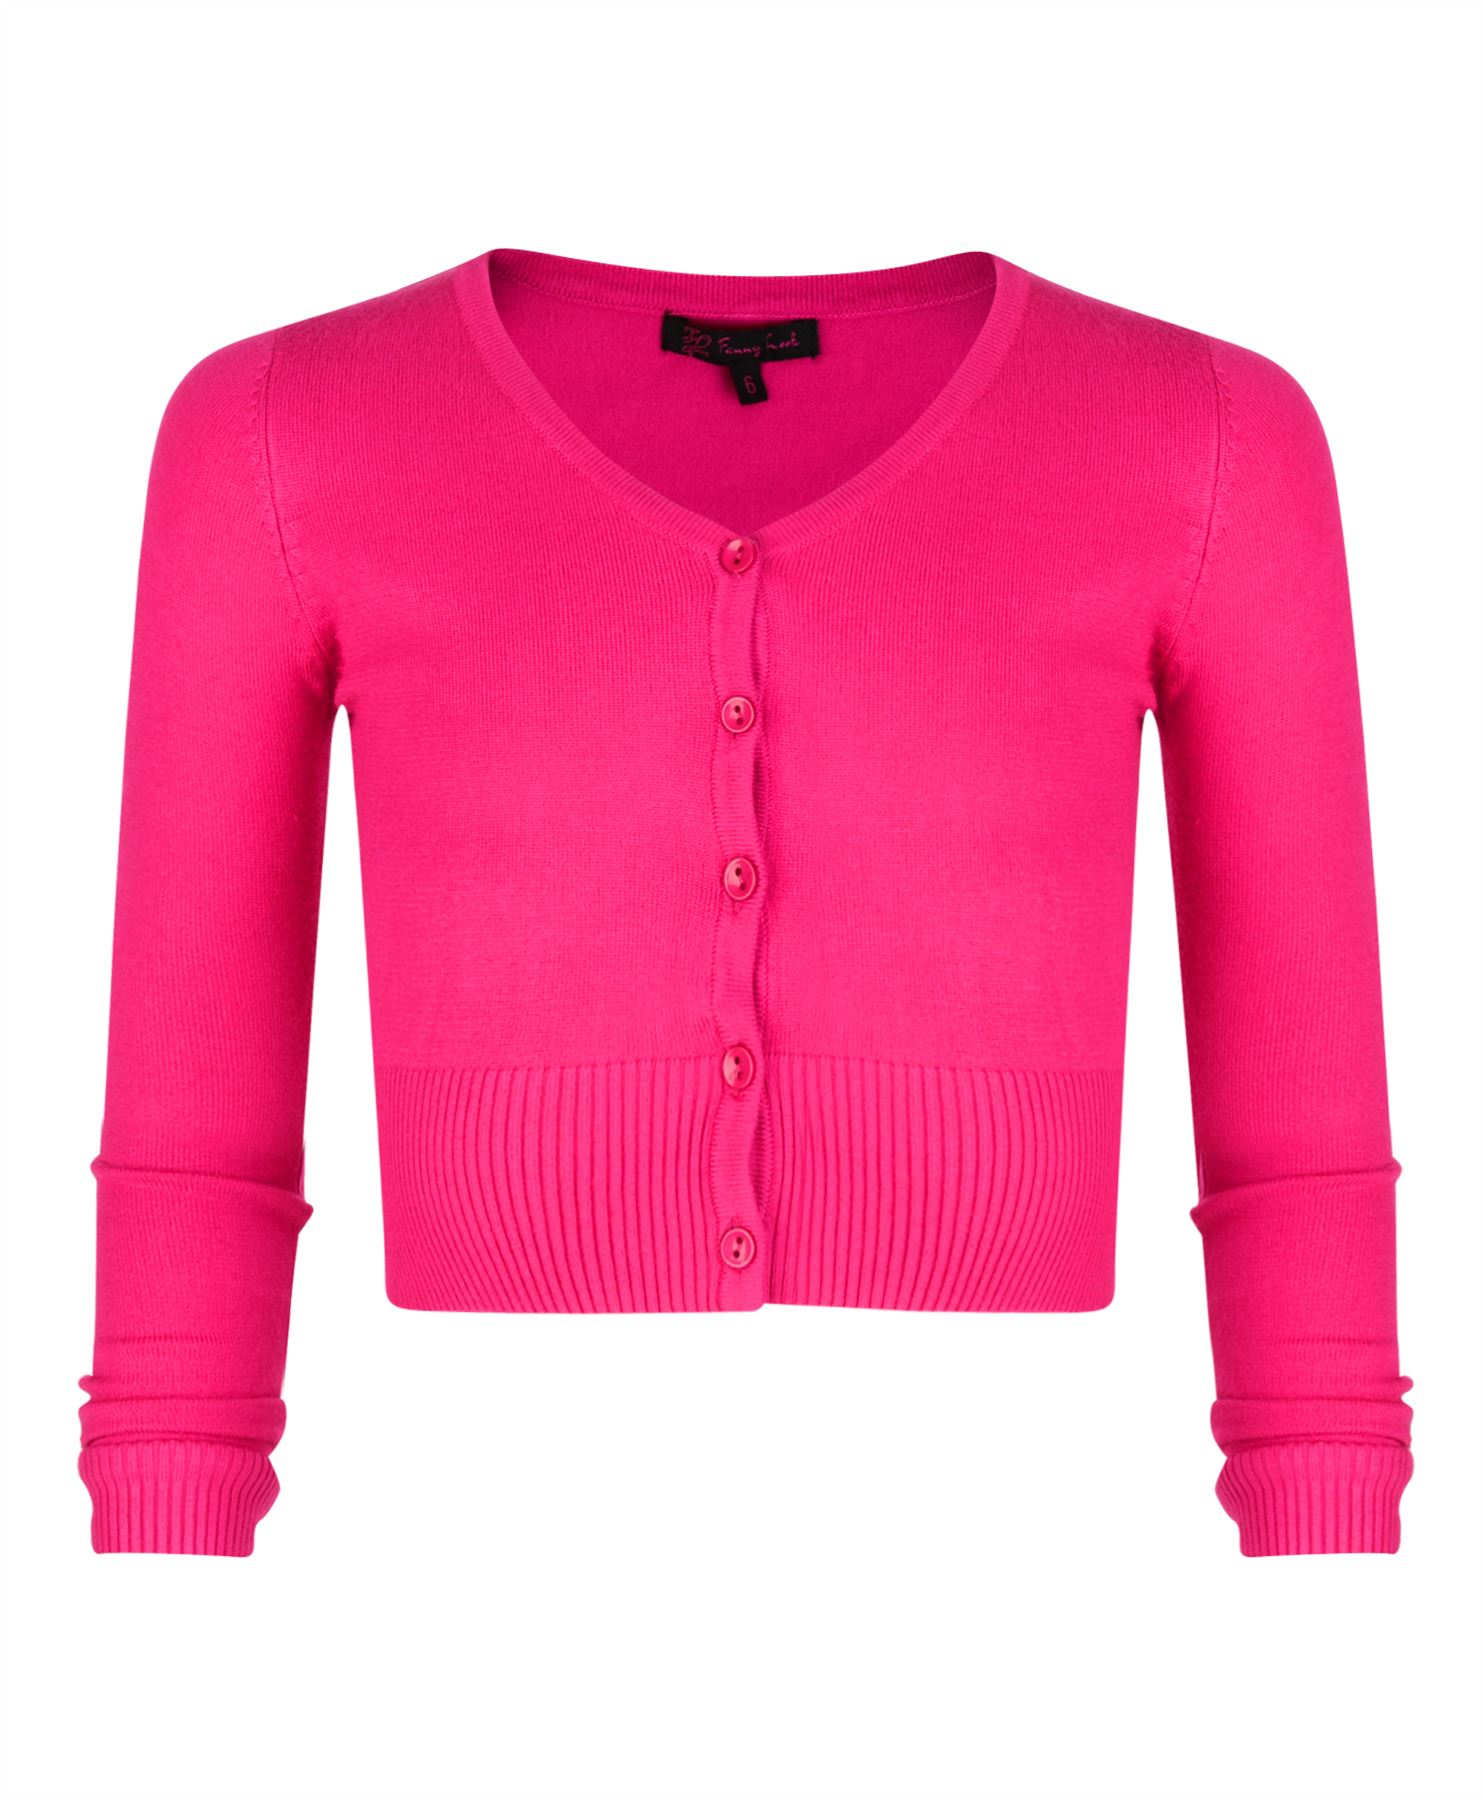 Fille-Manches-Longues-Cardigan-Court-Enfants-Col-V-Maille-Fine-Pull-3-14-An